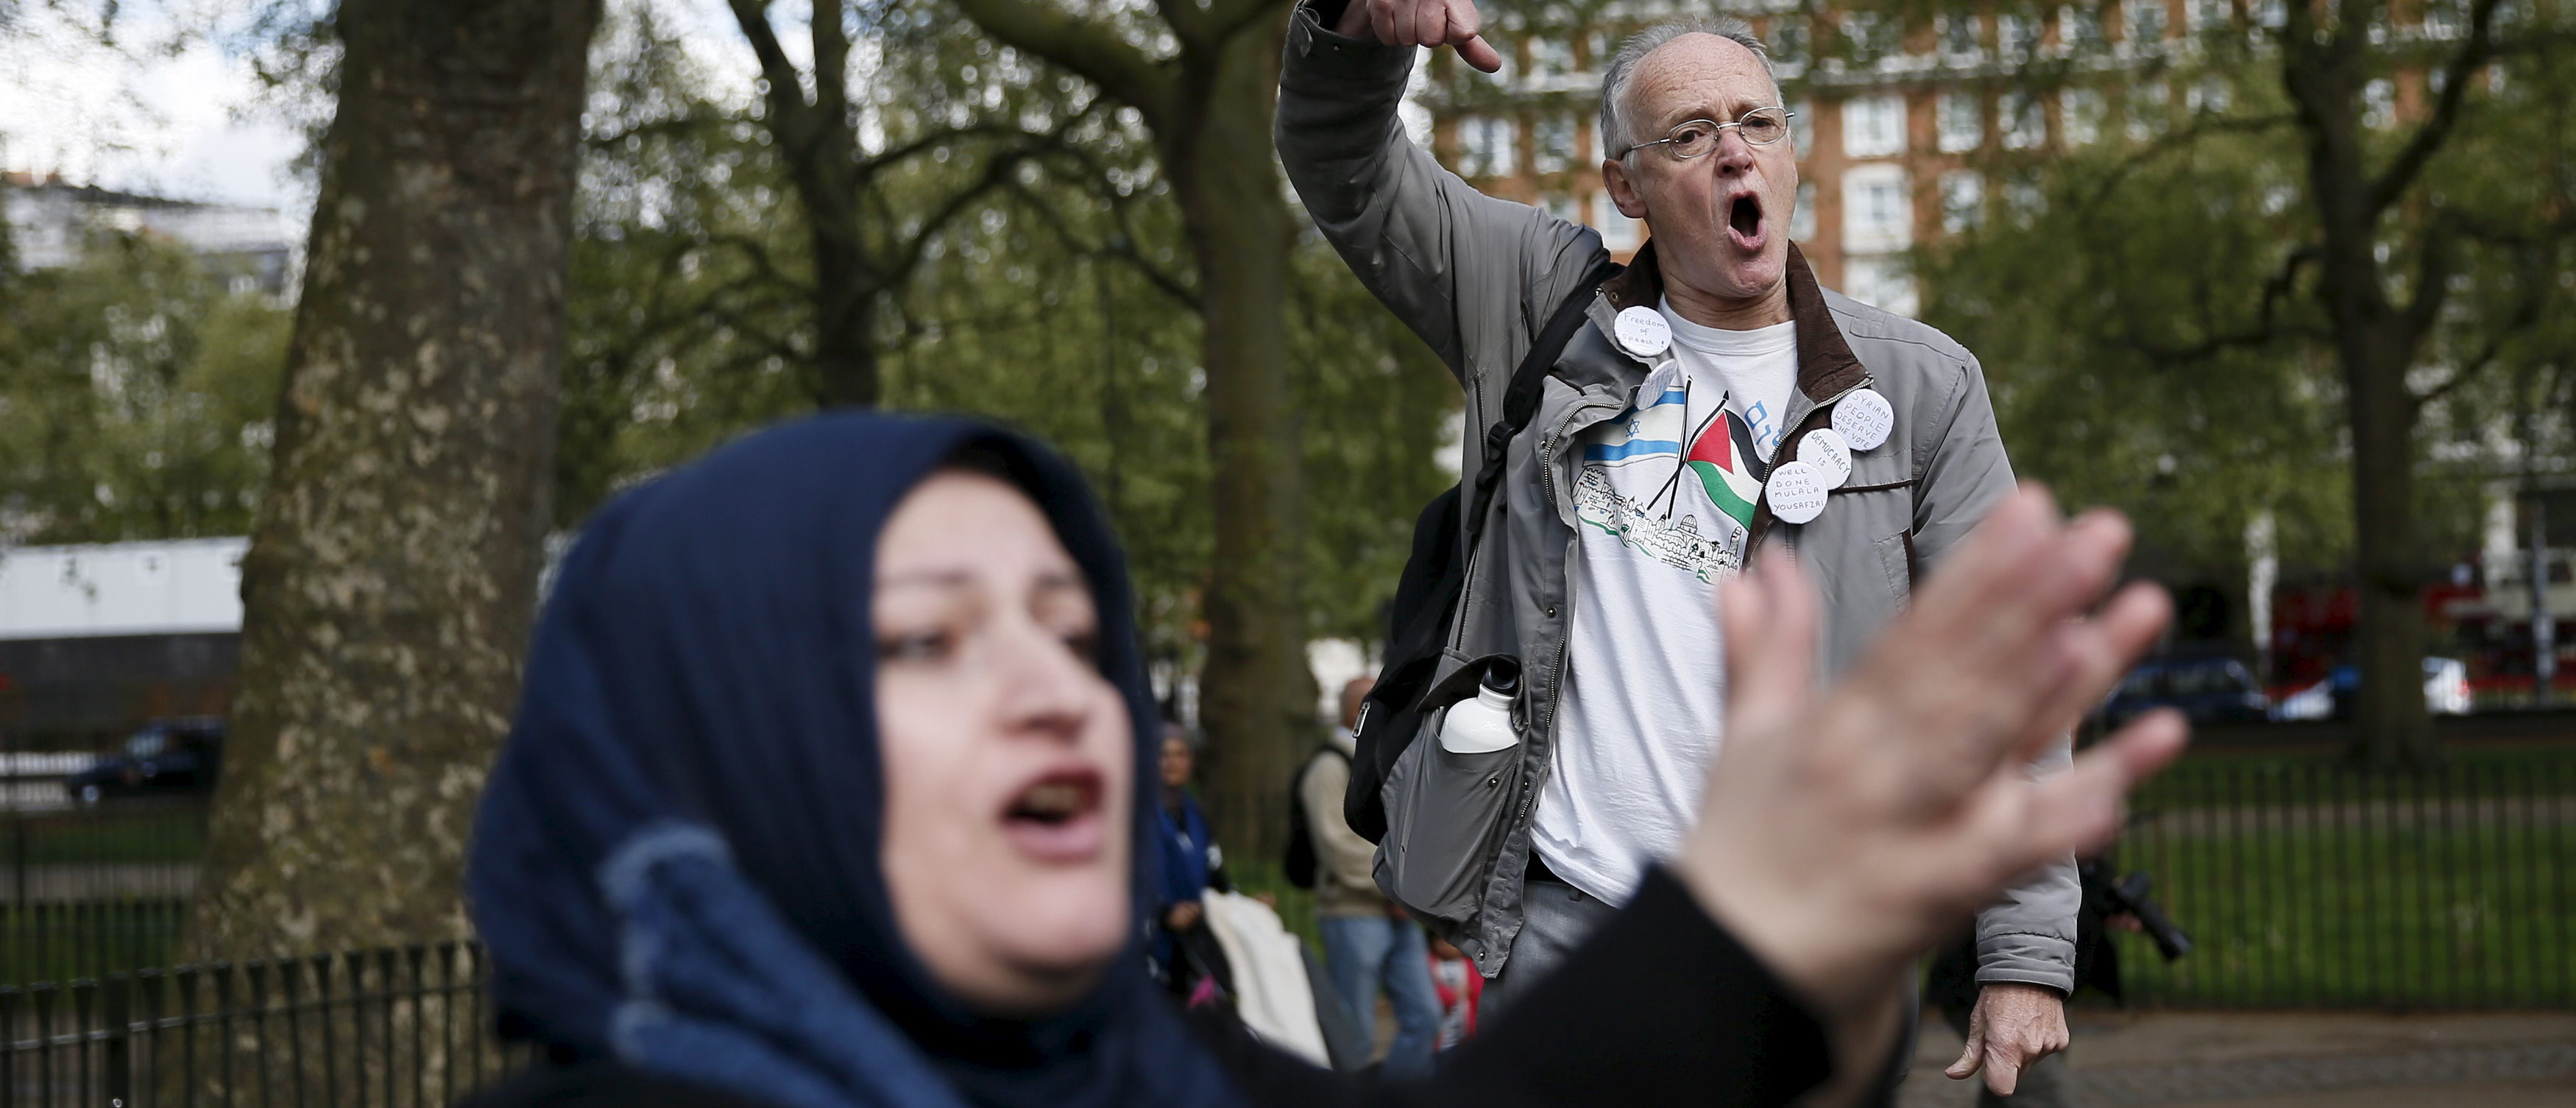 A speaker (back) addresses a crowd next to a heckler at Speakers' Corner in Hyde Park, London, Britain May 3, 2015. REUTERS/Stefan Wermuth